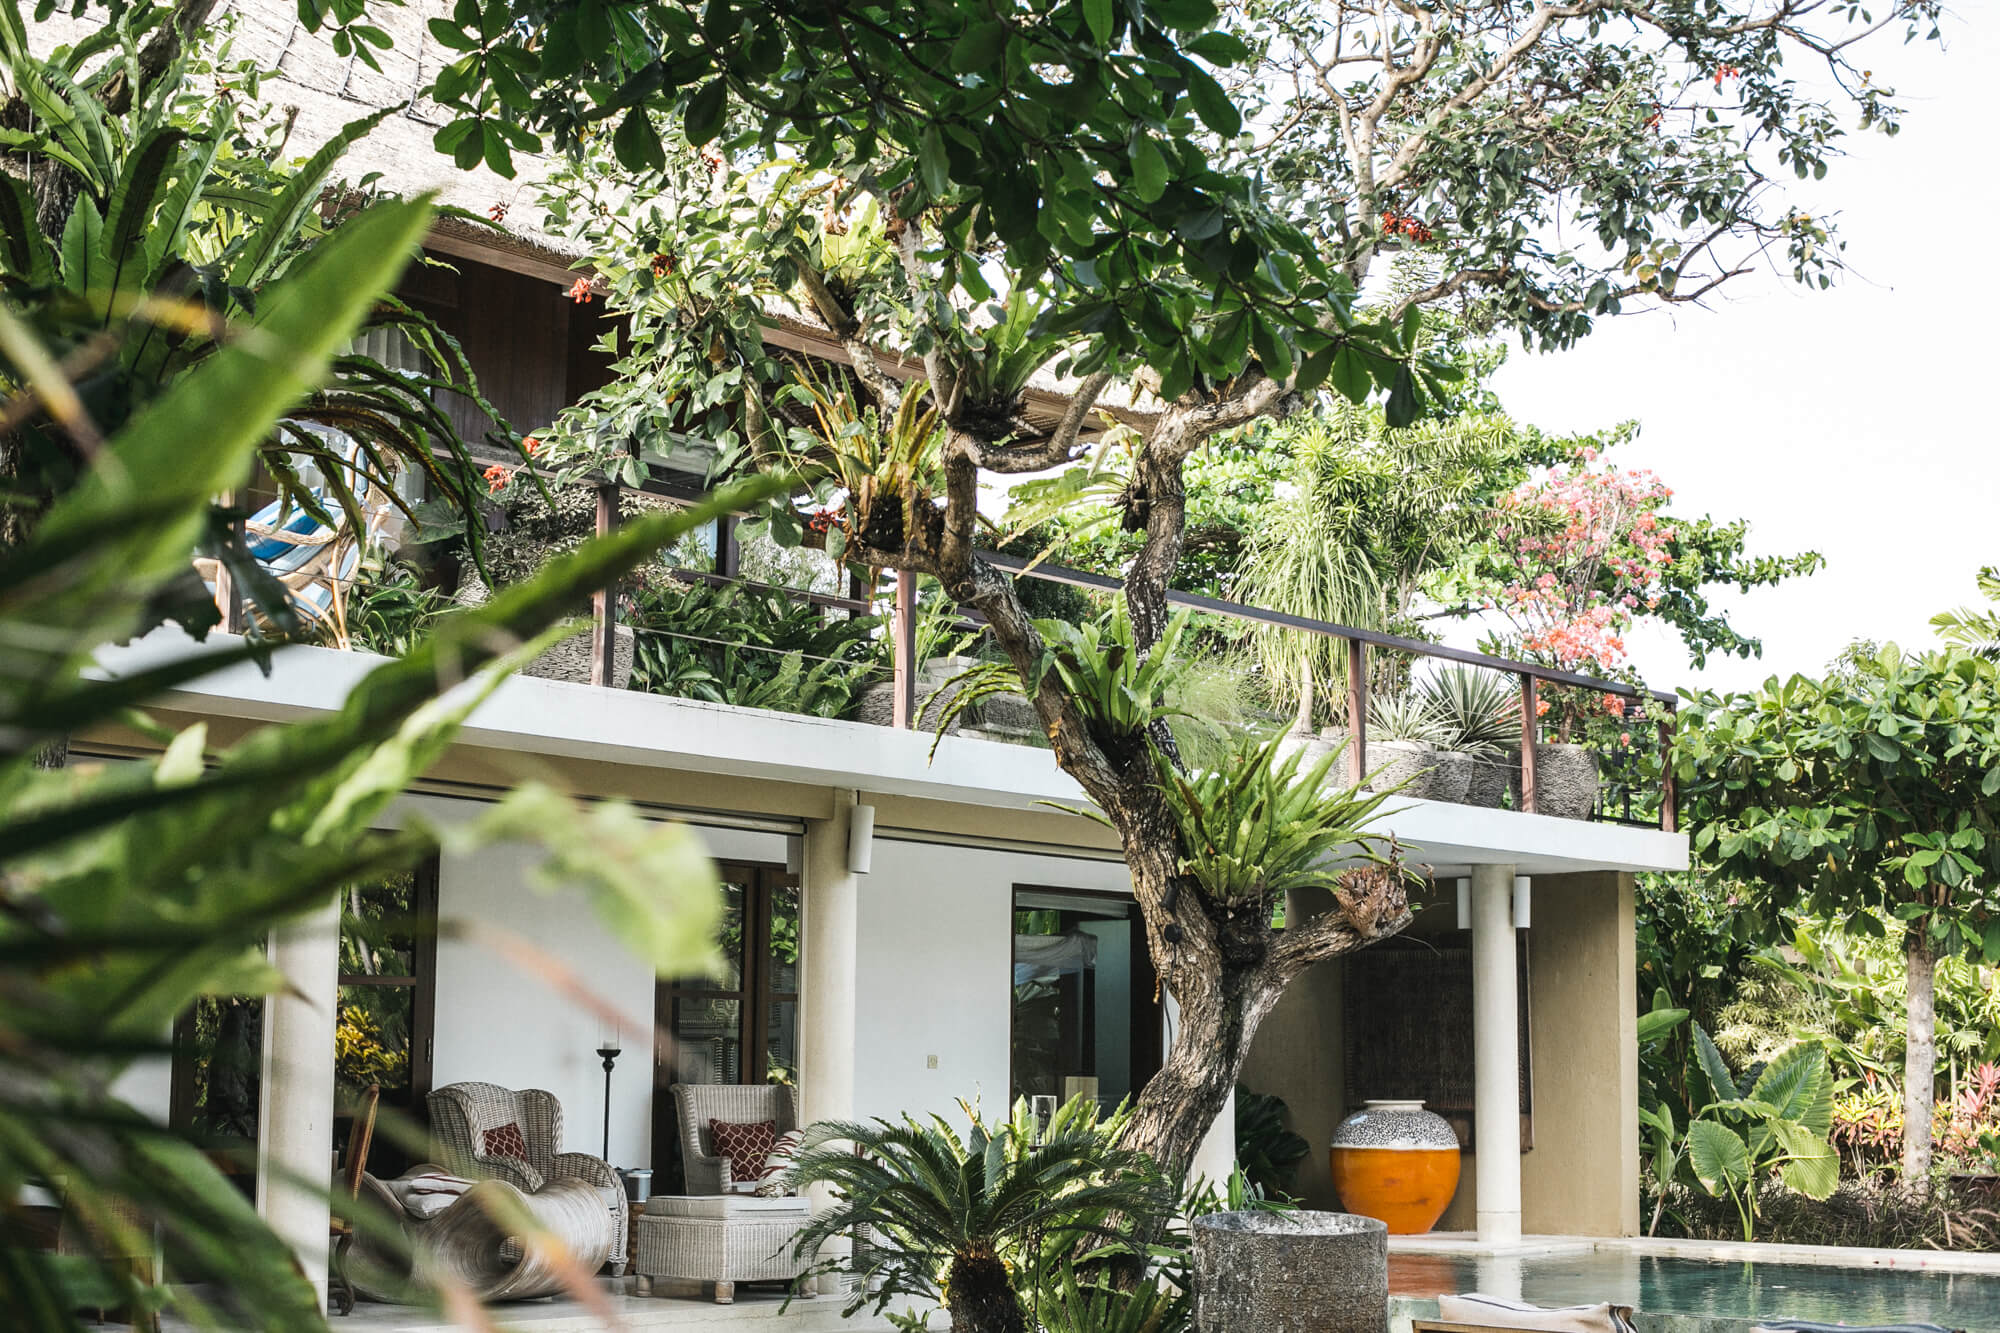 House-view-at-The-Place-Retreats-Bali